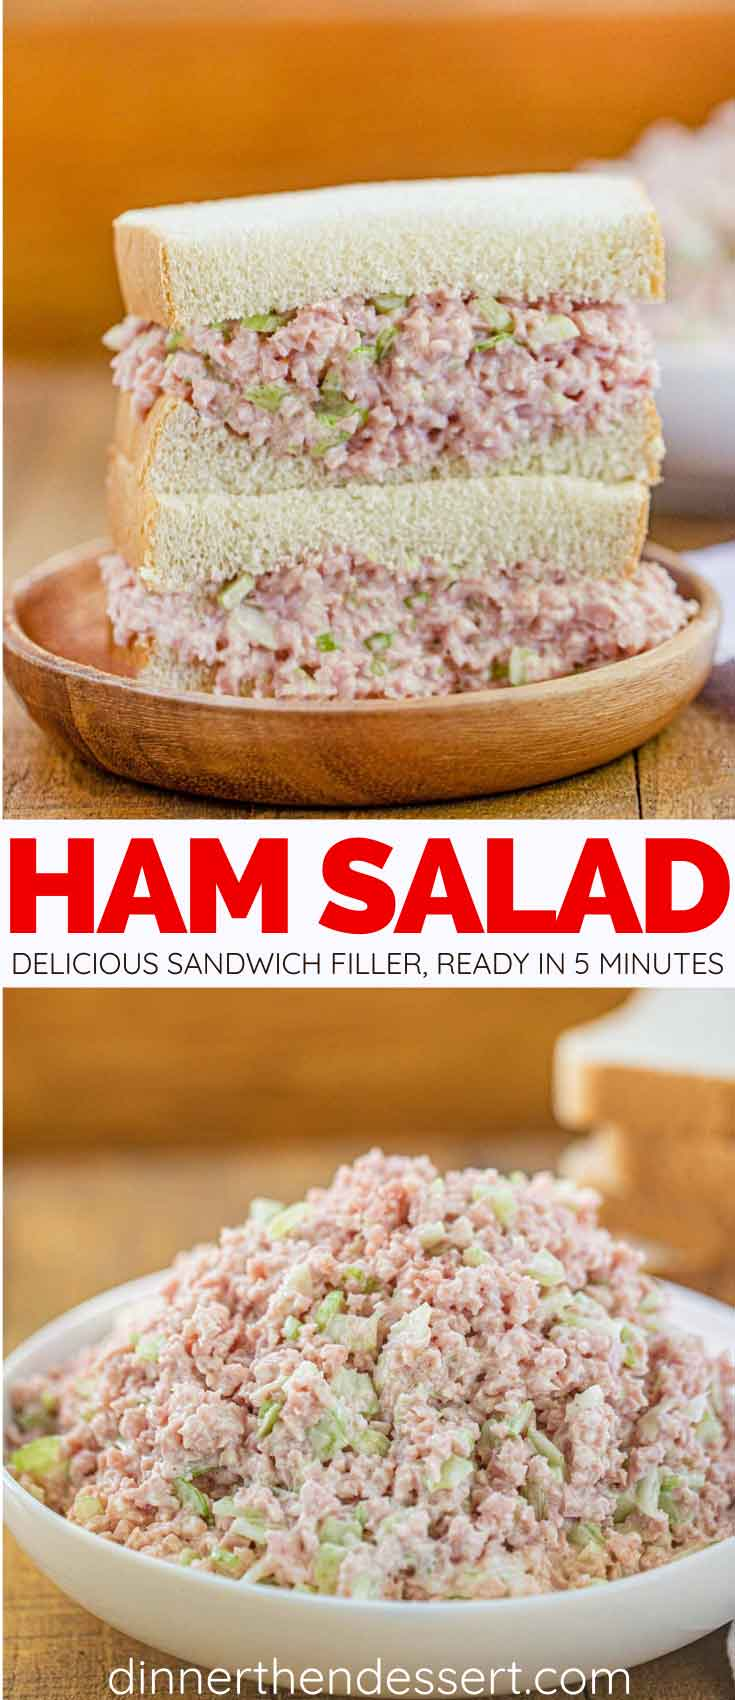 Ham Salad collage